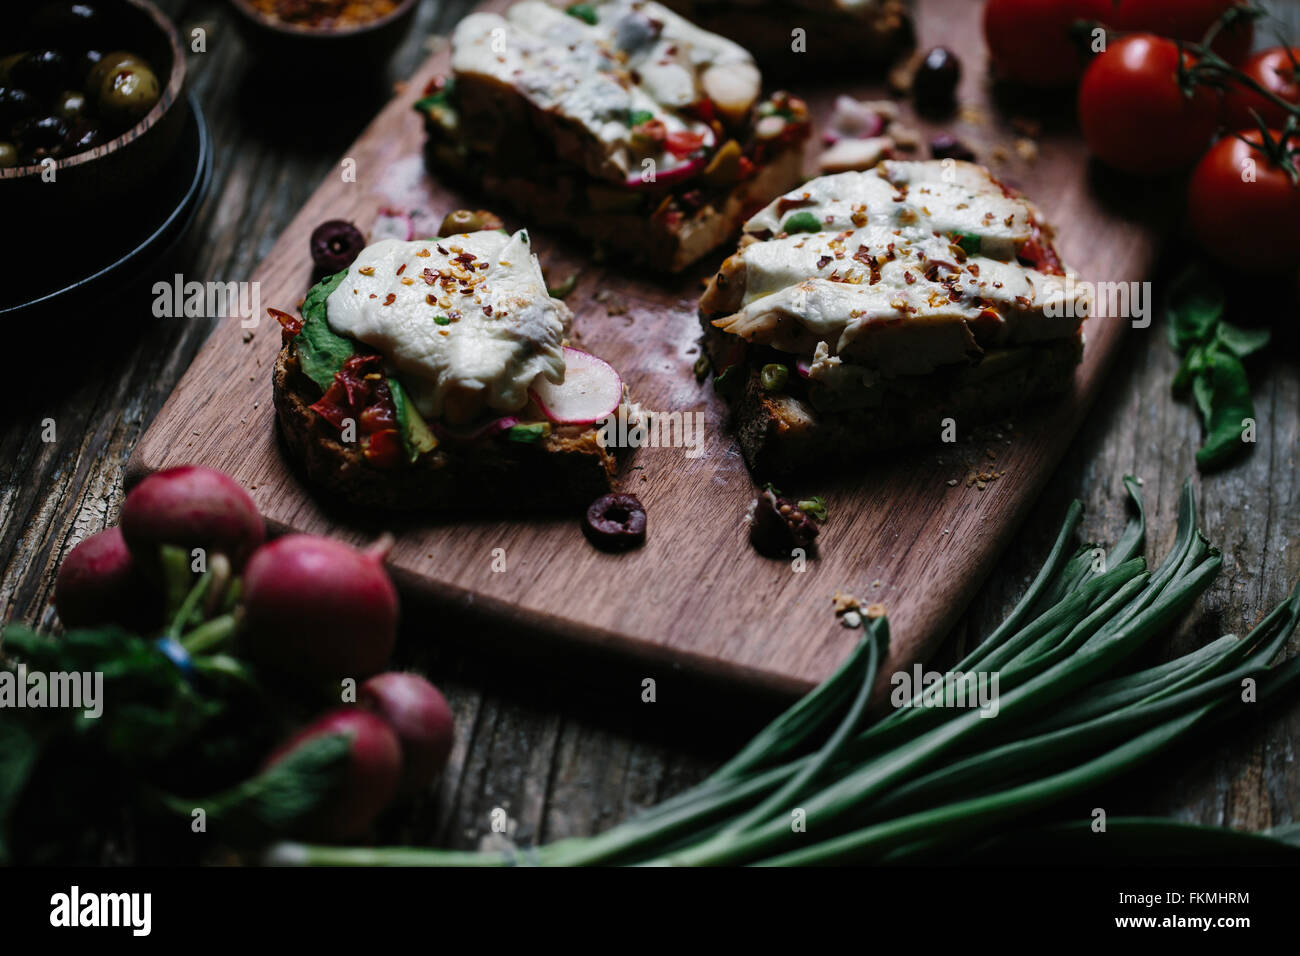 A sliced open-face chicken caprese sandwich is photographed from the front view. - Stock Image